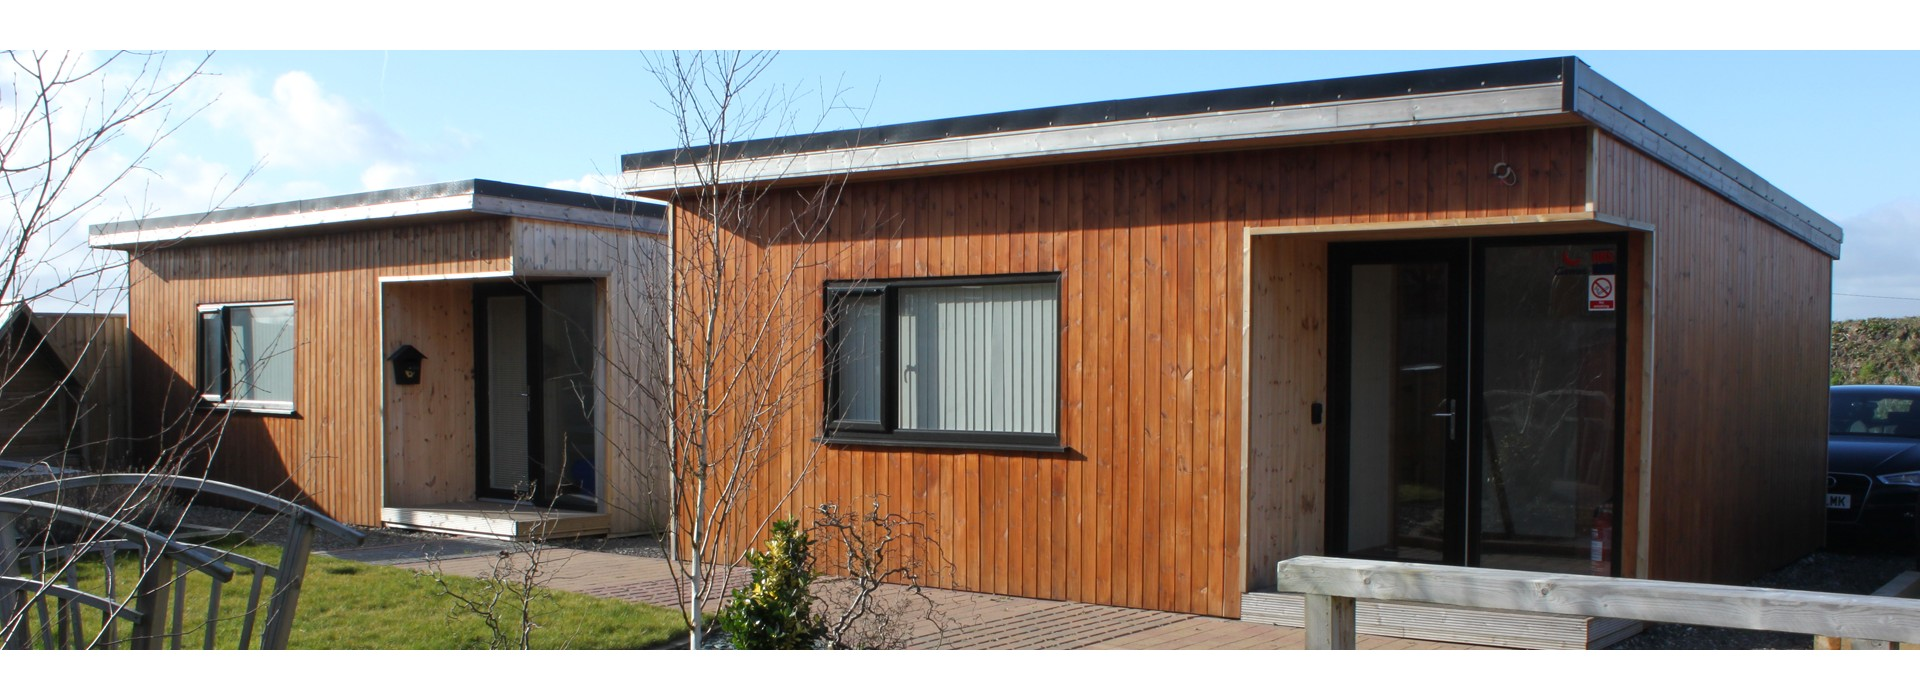 garden office 0 client. contemporary and luxury garden rooms designed for you garden office 0 client